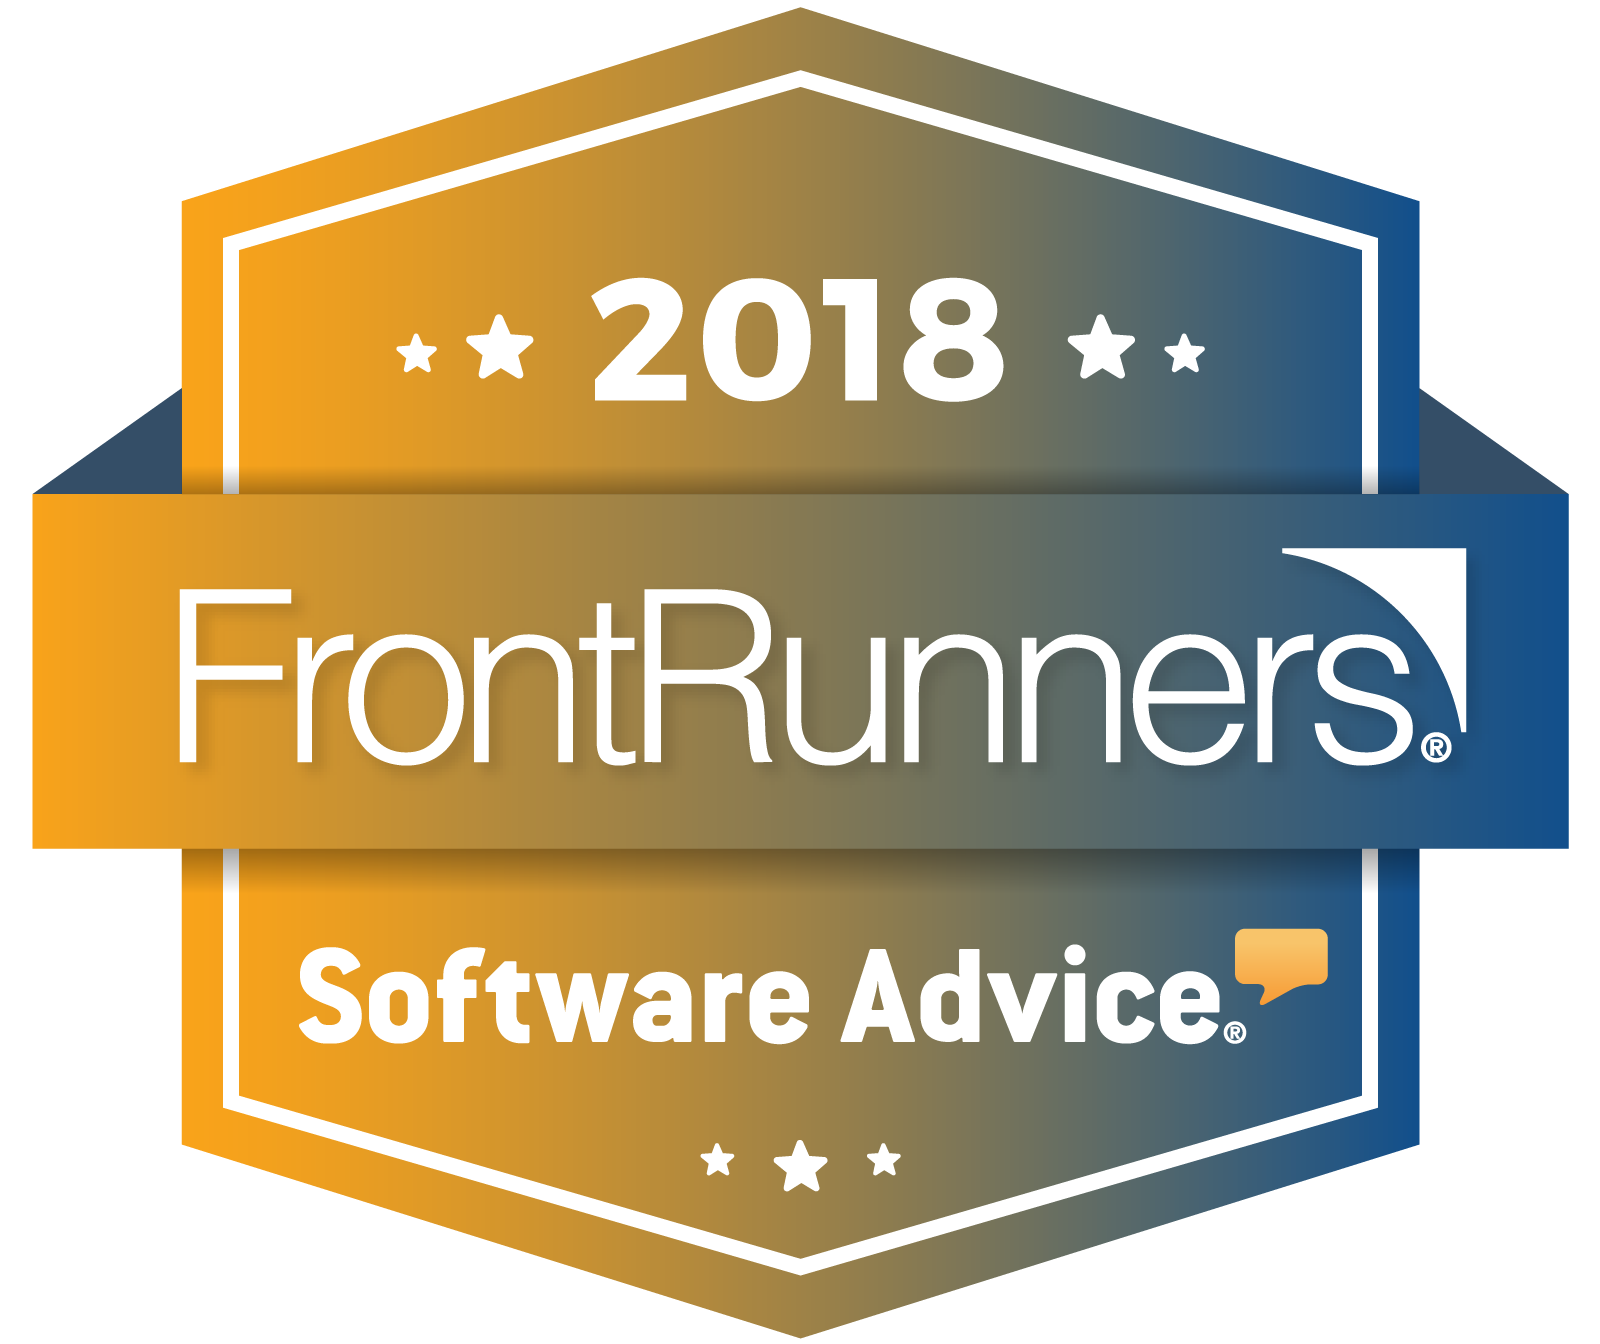 FrontRunners constitute the subjective opinions of individual end-user reviews, ratings and data applied against a documented methodology; they neither represent the views of, nor constitute an endorsement by, Software Advice or its affiliates.